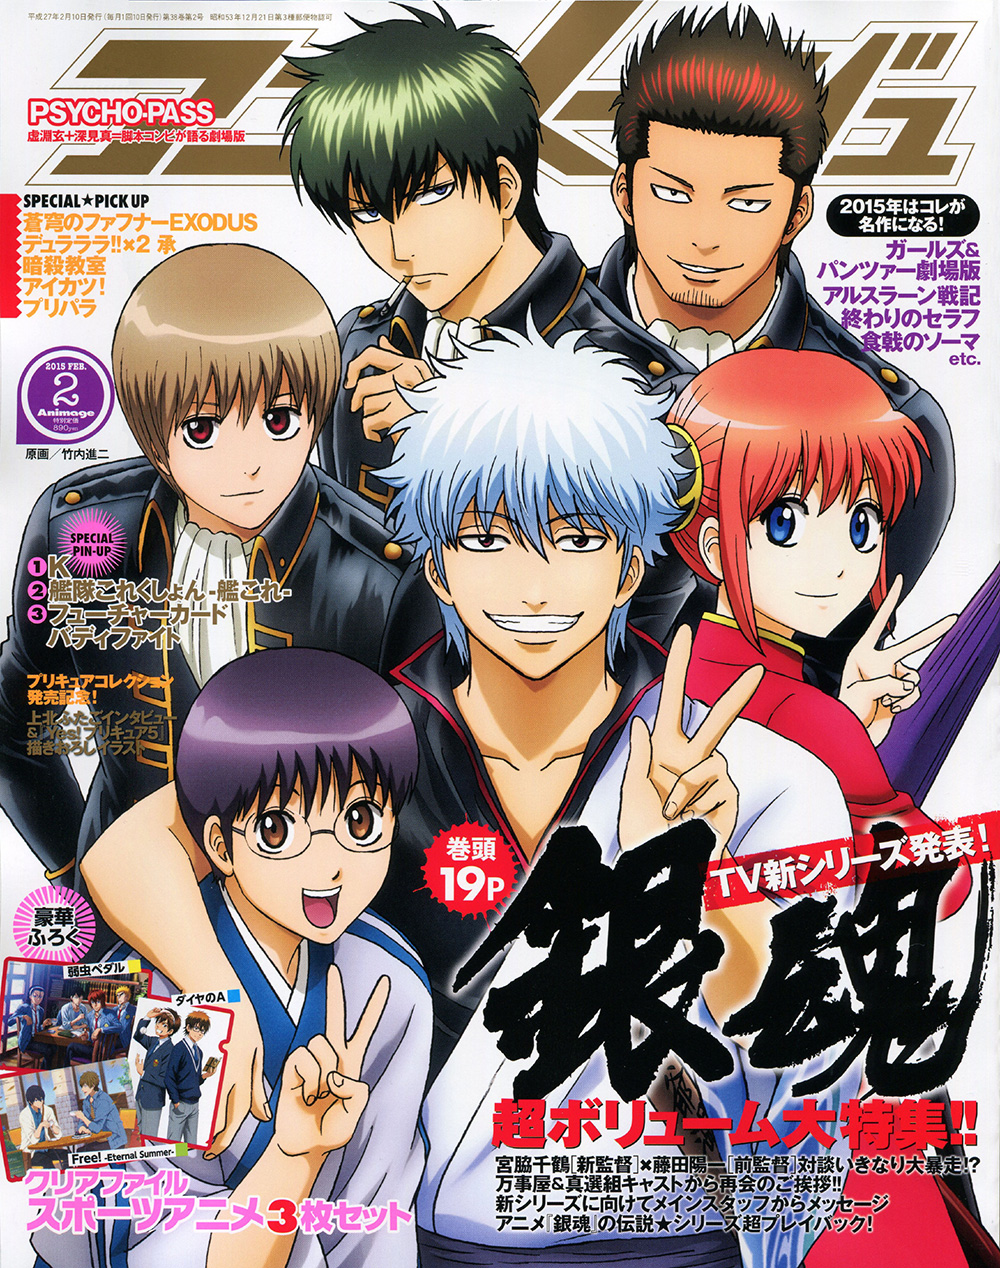 Charapedia Top 20 Anticipated Anime of Spring 2015-#1-Gintama-2015